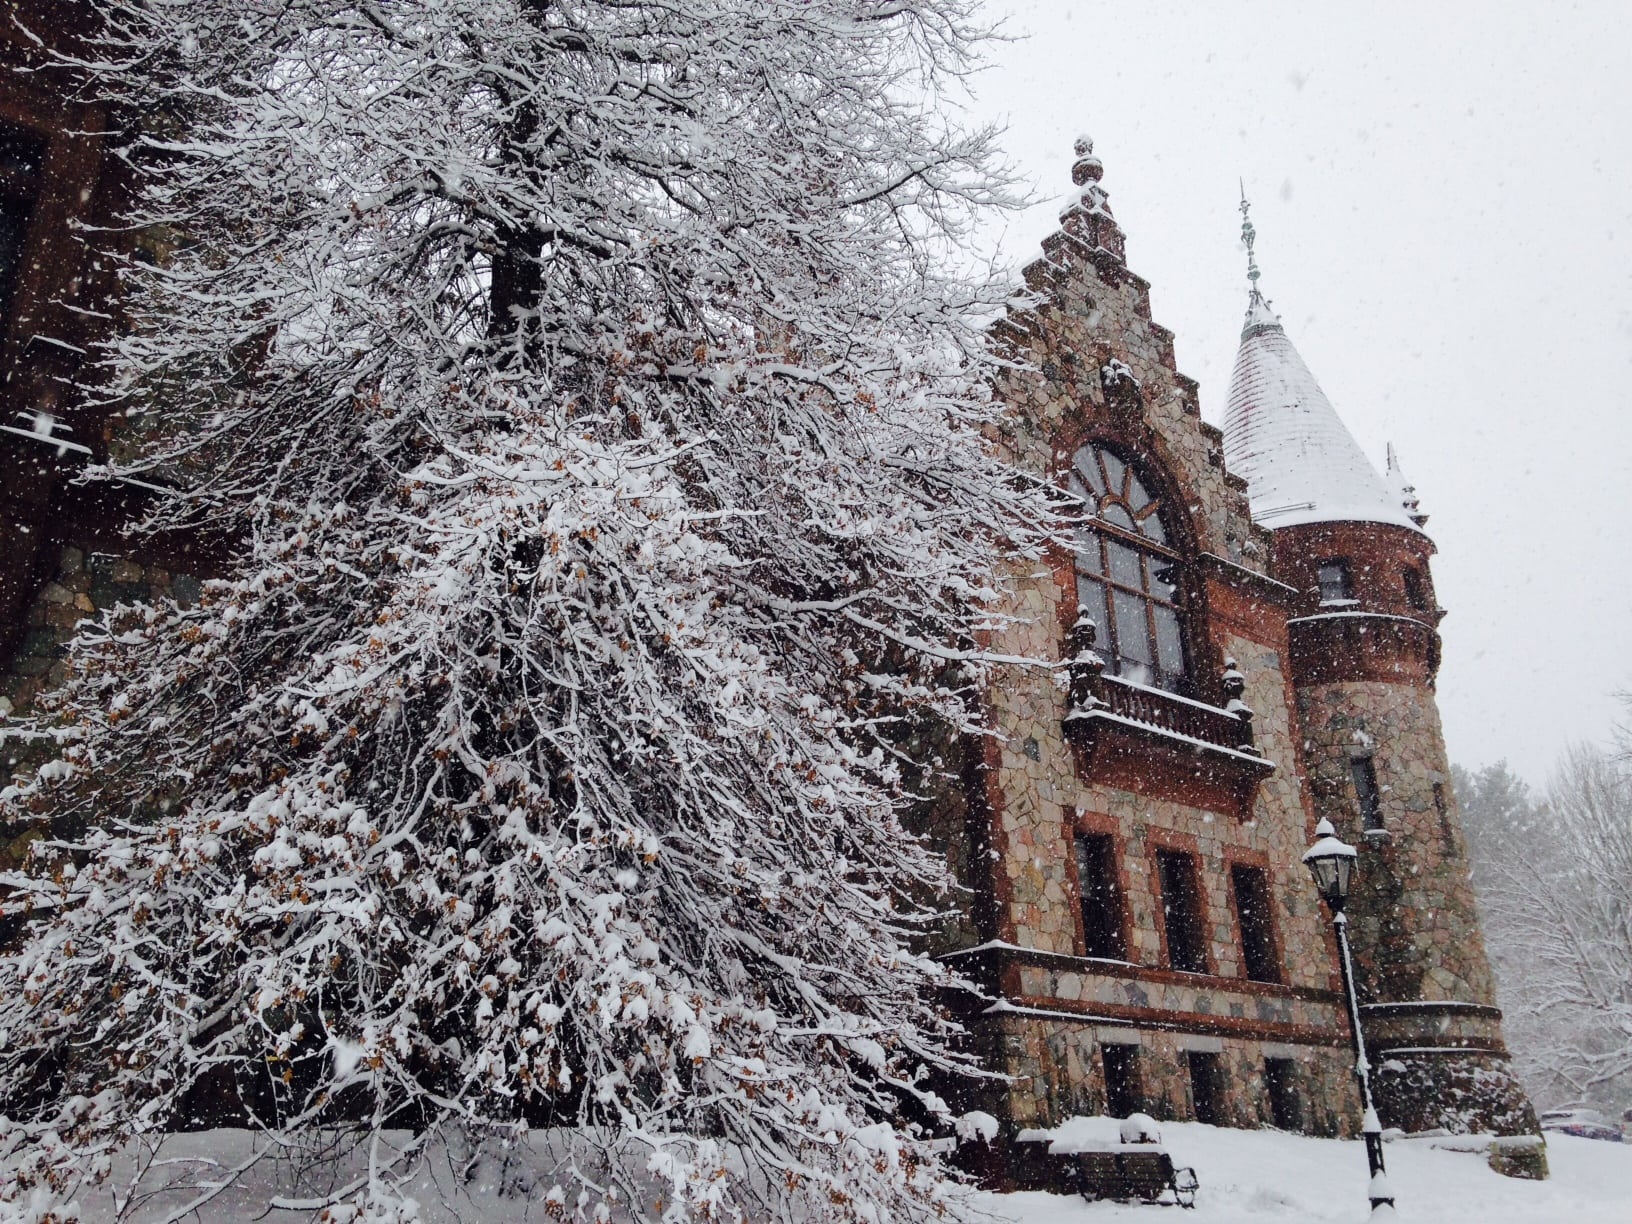 Wellesley Town Hall, Spring 2016 snow storm